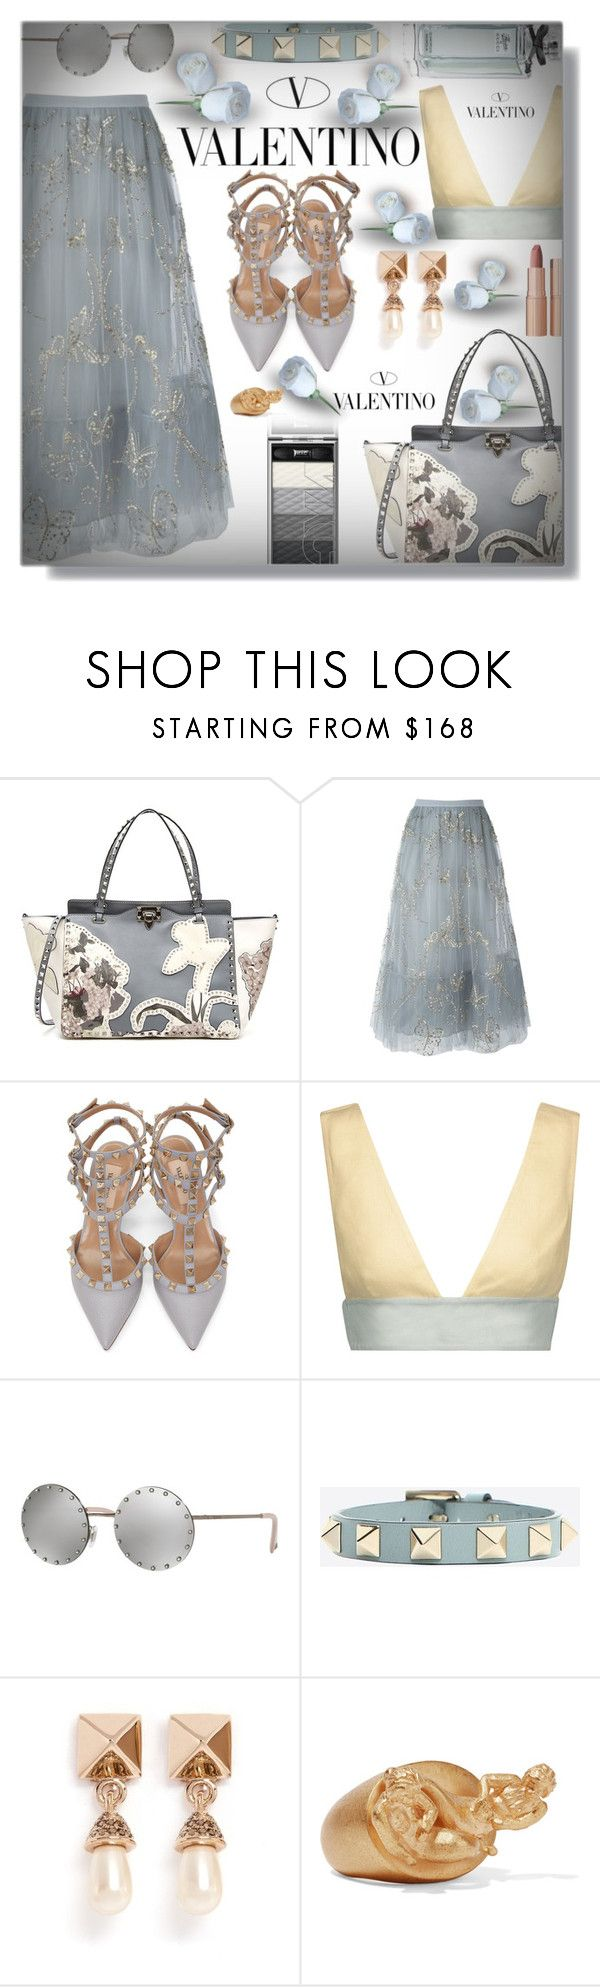 """Valentino Against your Polybody!"" by sarahguo ❤ liked on Polyvore featuring Valentino and Charlotte Tilbury"